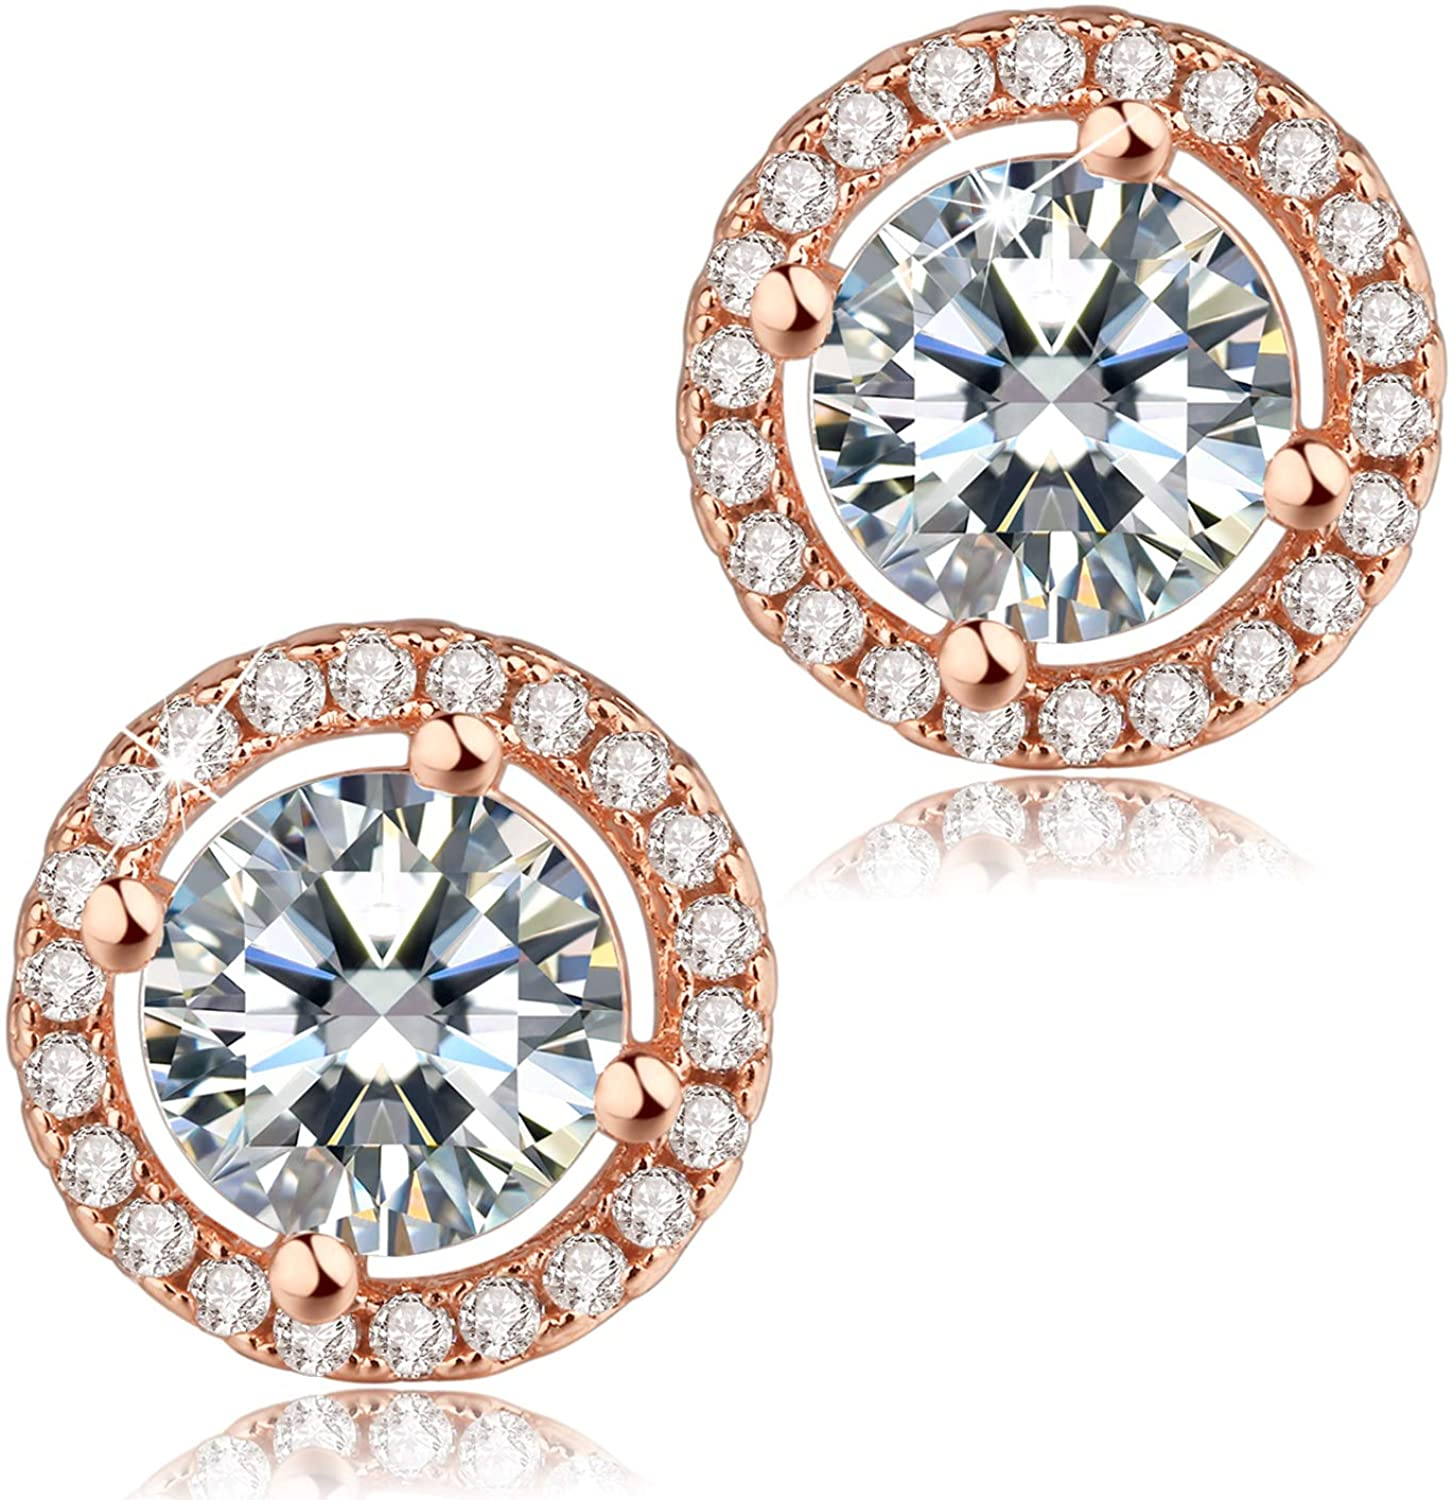 Madeone 18K Rose Gold Plating Round Cut 1.66ct Cubic Zirconia Halo Stud Earring Hypoallergenic Christmas Jewelry Gifts for Women with Box Packing